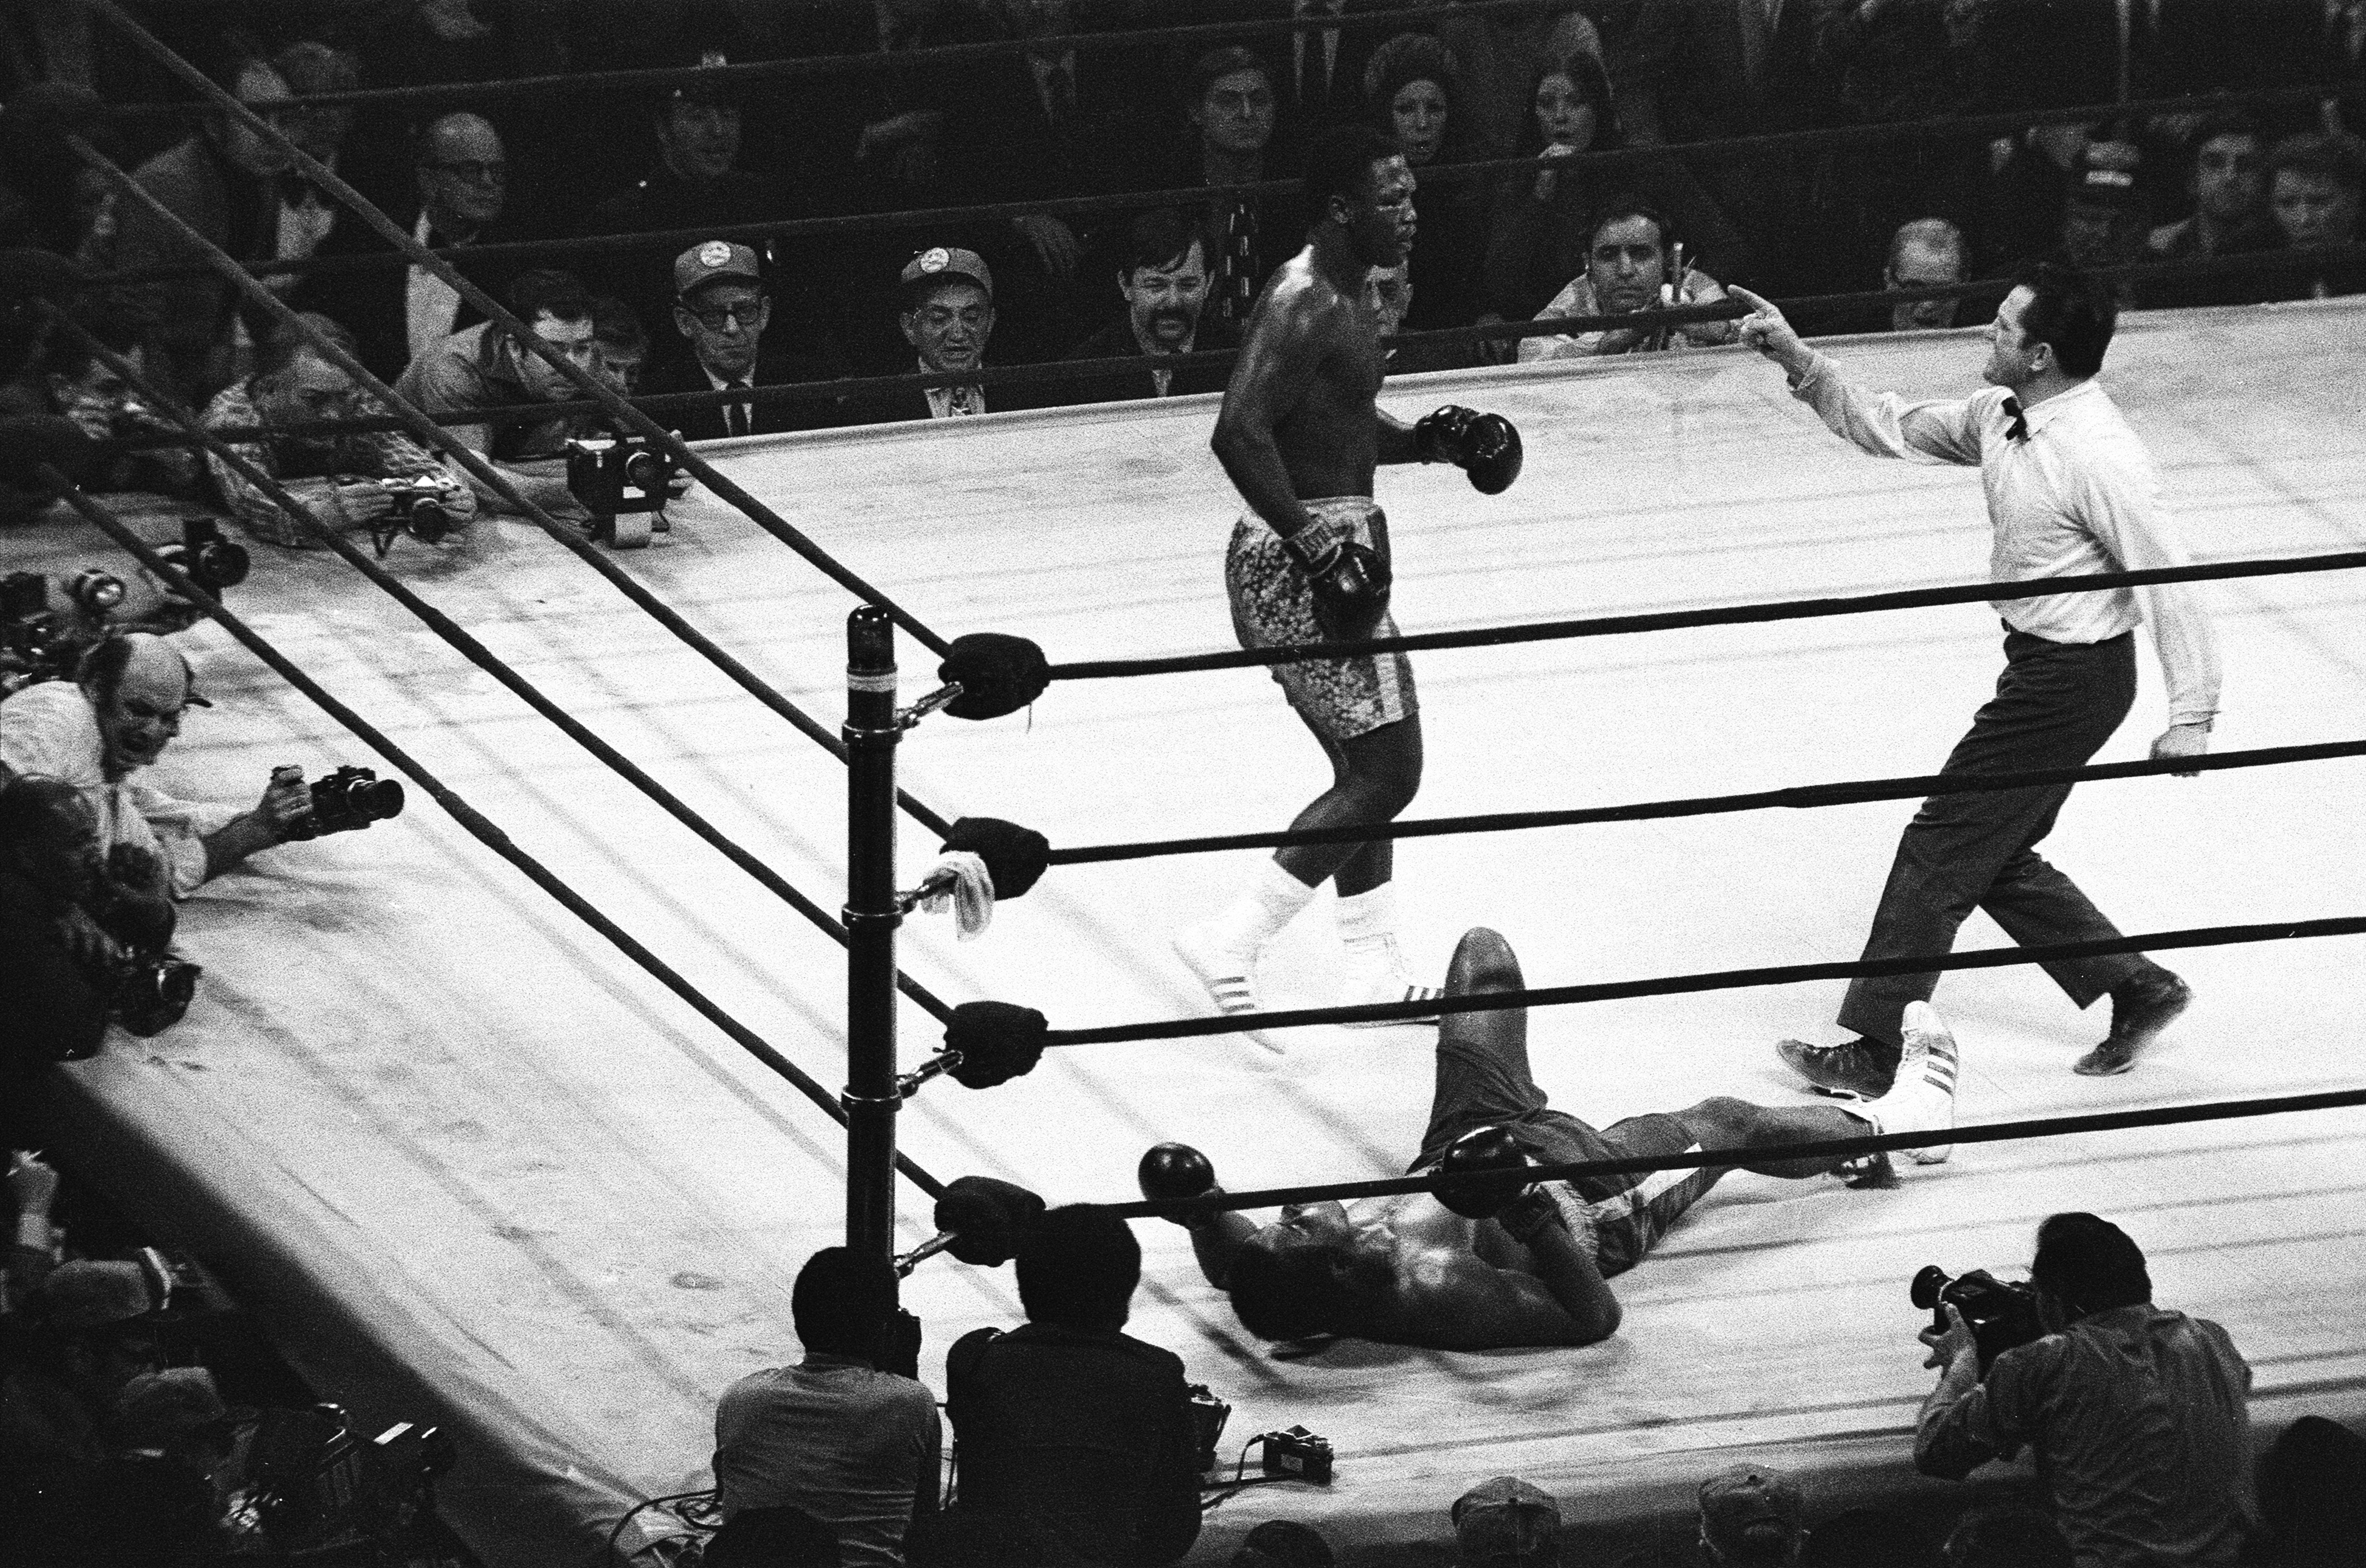 Muhammad Ali seen here after being knock to the canvass during his world title fight against Smokin Joe Frazier at Madison Square Garden 7th March 1971, Image: 106812092, License: Rights-managed, Restrictions: , Model Release: no, Credit line: Profimedia, MirrorPix